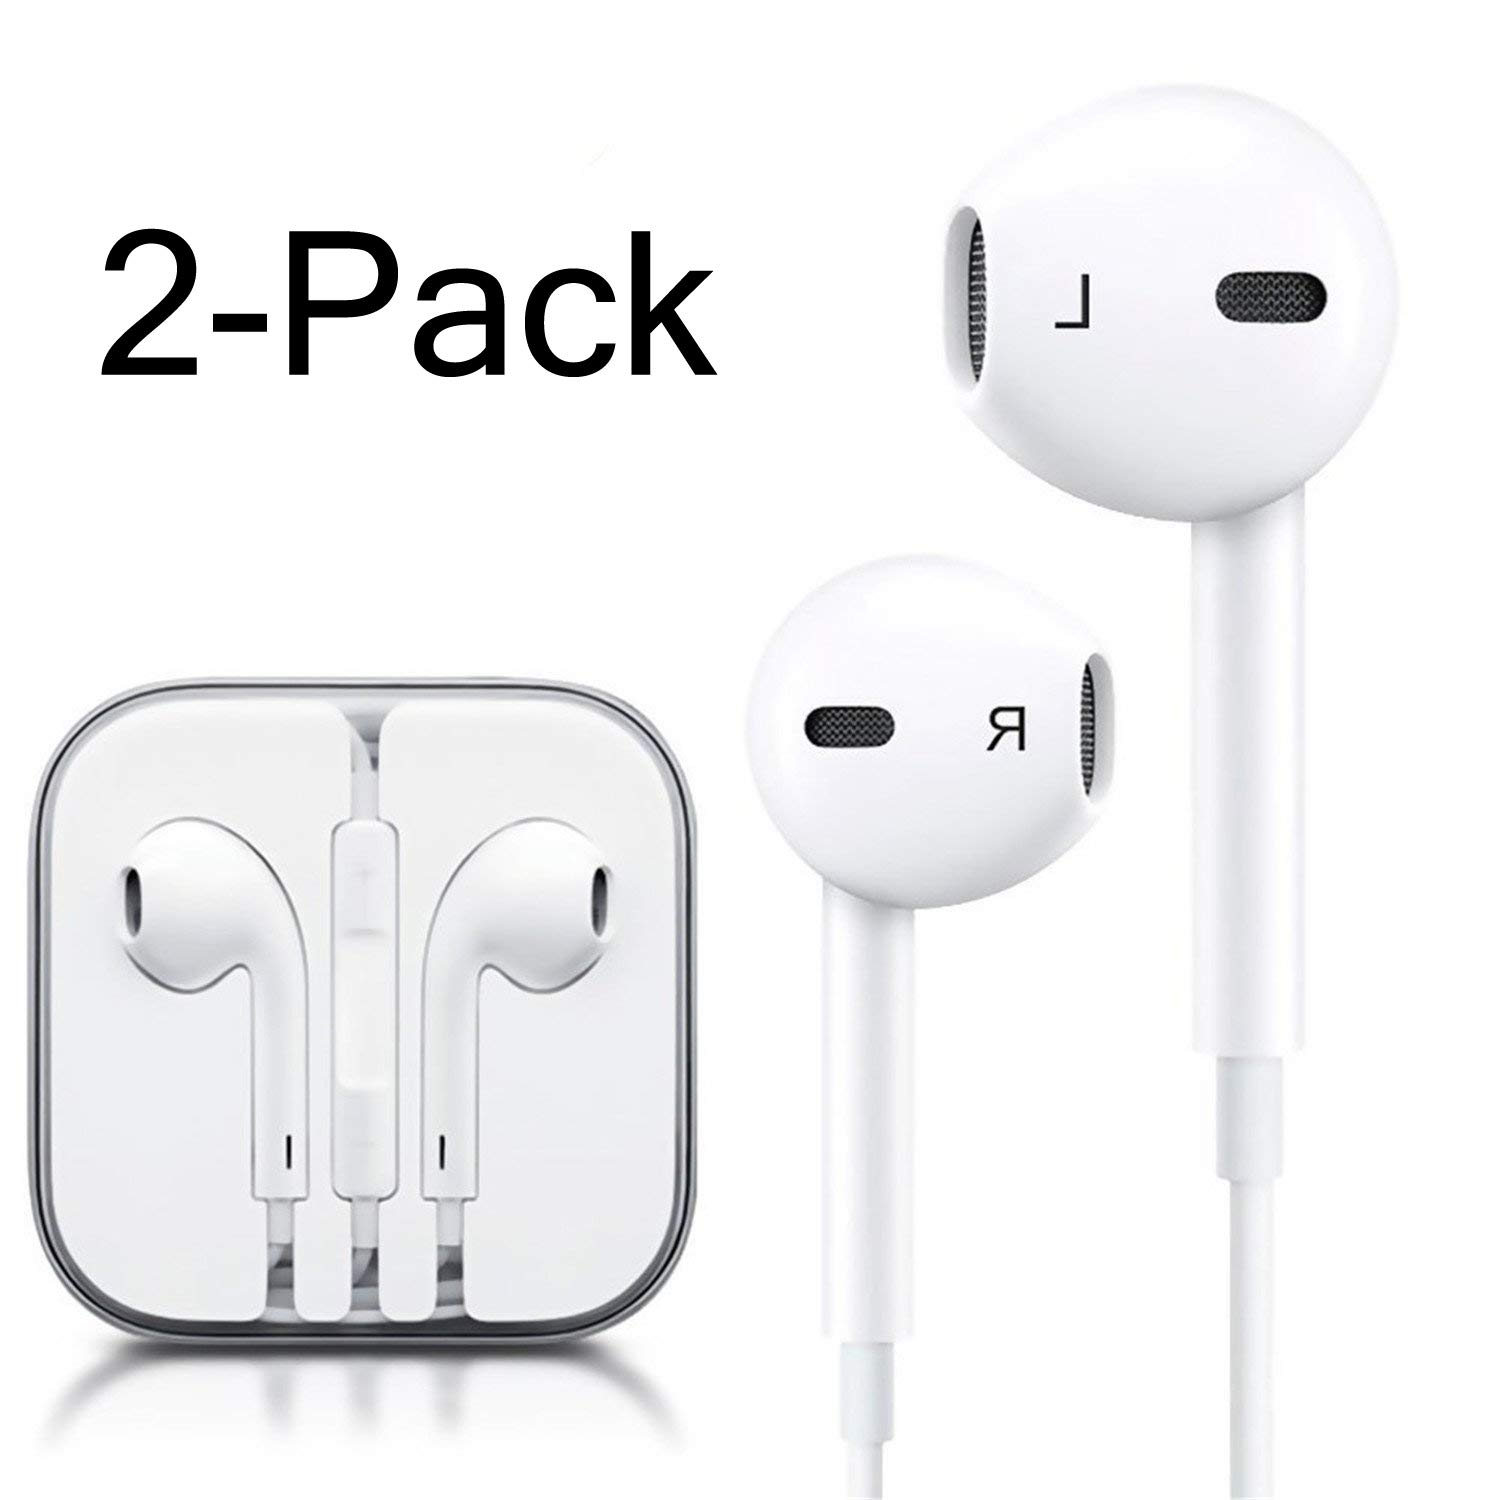 iPhone Headphones Ear Buds with Mic Remote Volume Control Earphone Headset Compatible iPhone 6s 6 5s Se 5 5c 4s Plus iPod iPad White (2-Pack)